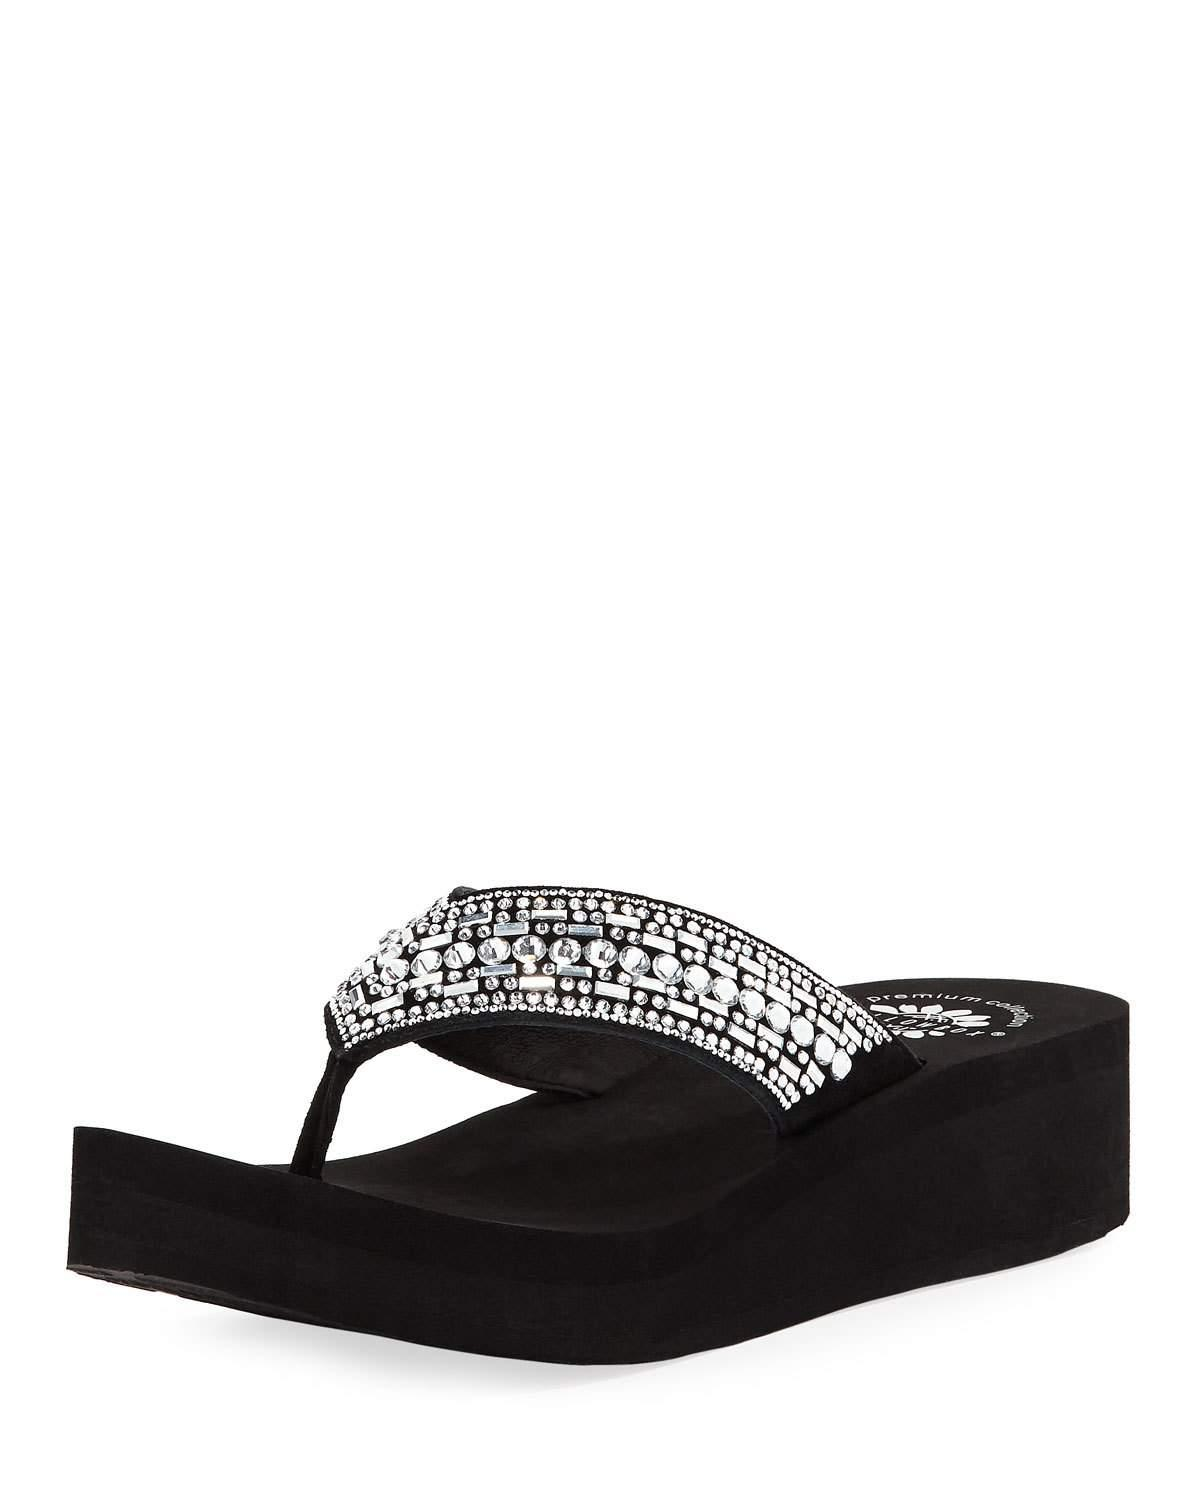 587ee8f28 Premium Collection By Yellow Box Janiya Embellished Platform Sandal In Black